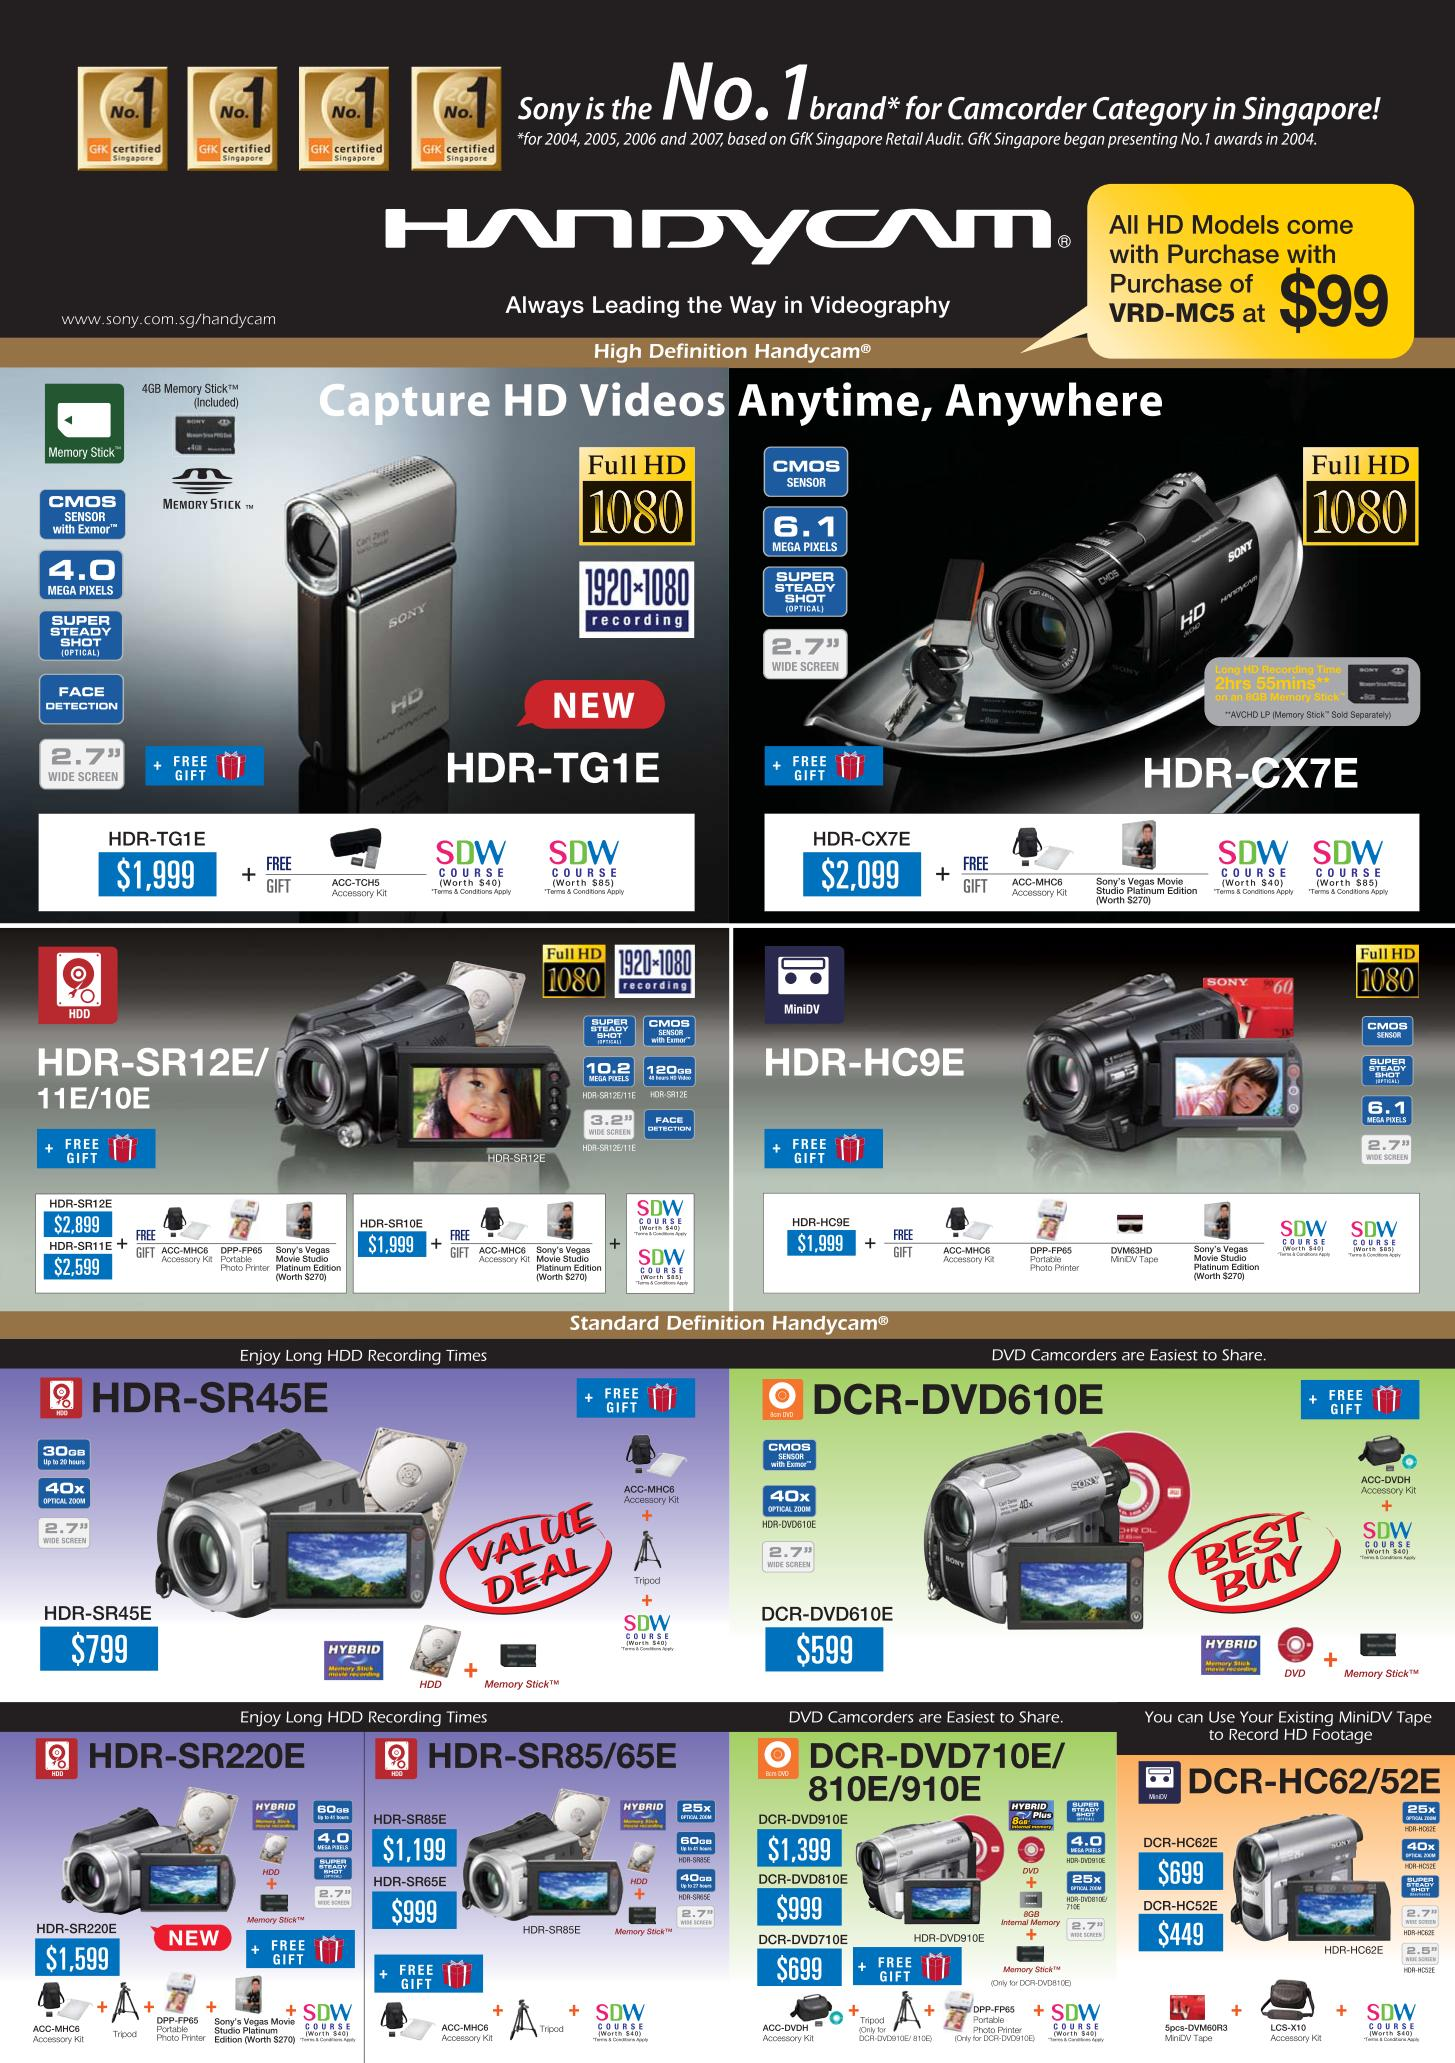 PC Show 2008 price list image brochure of Sony Handycam